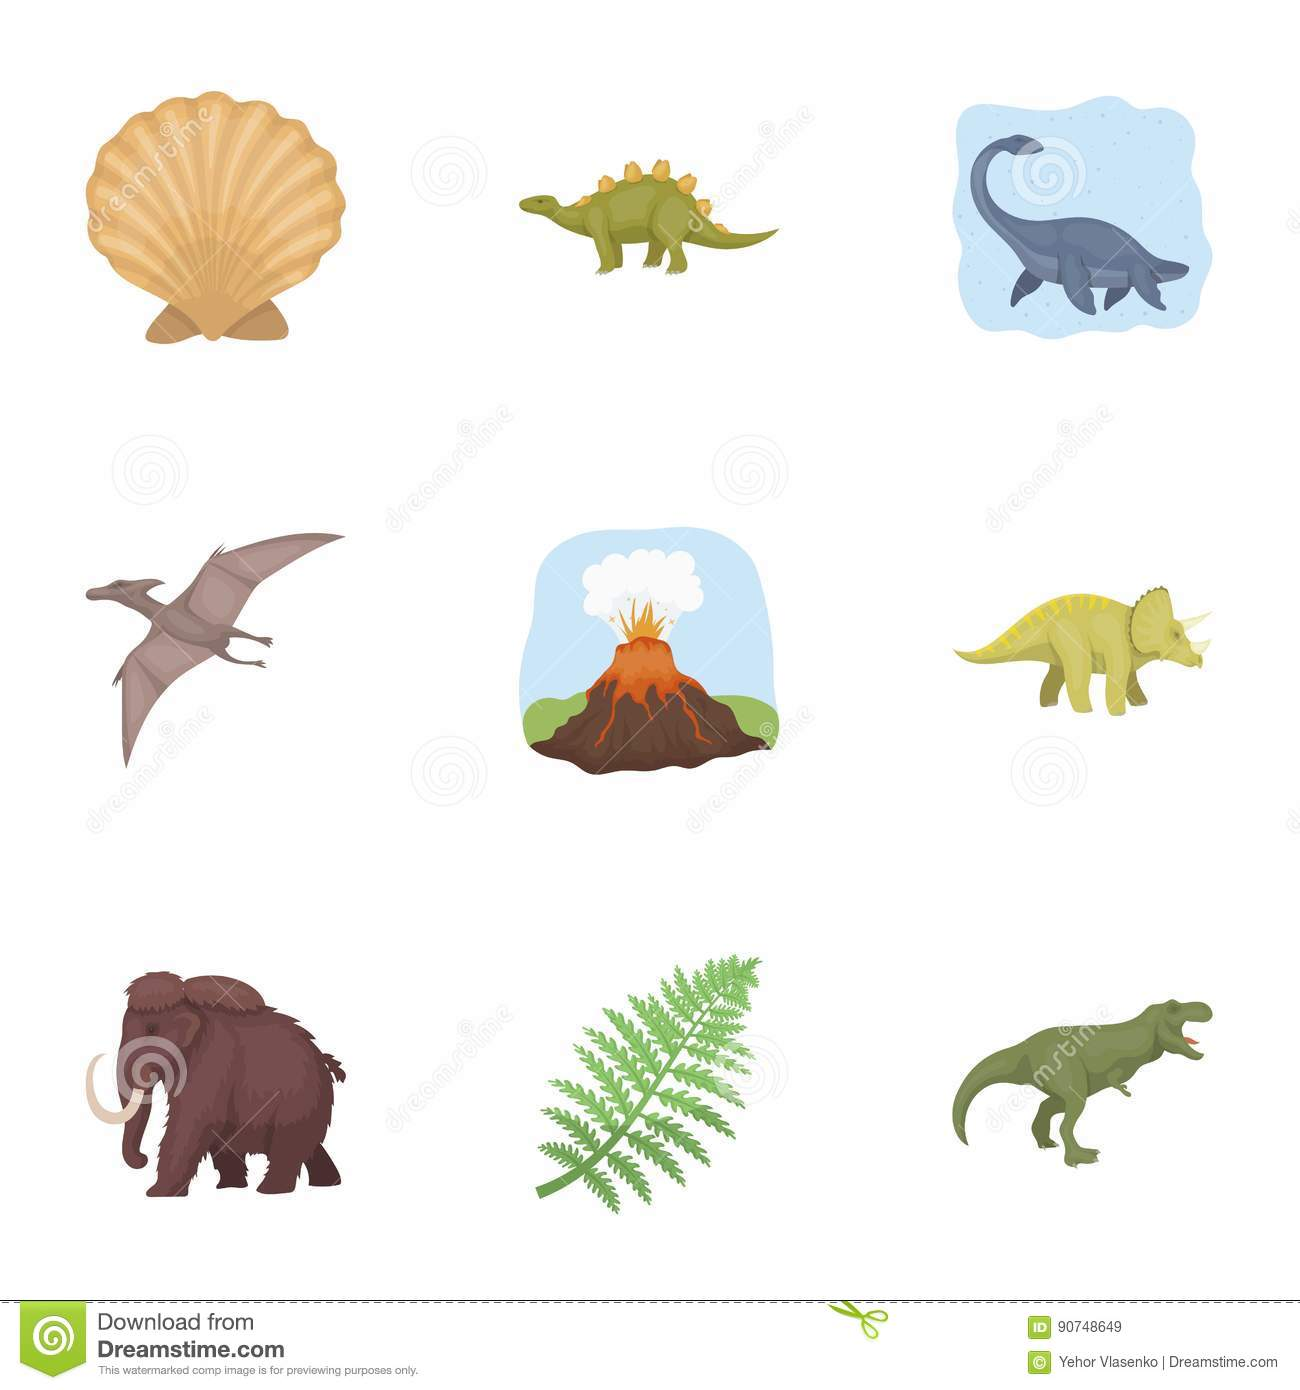 Image of: Mammals Ancient Extinct Animals And Their Tracks And Remains Dinosaurs Tyrannosaurs Pnictosaursdinisaurs Dreamstimecom Ancient Extinct Animals And Their Tracks And Remains Dinosaurs